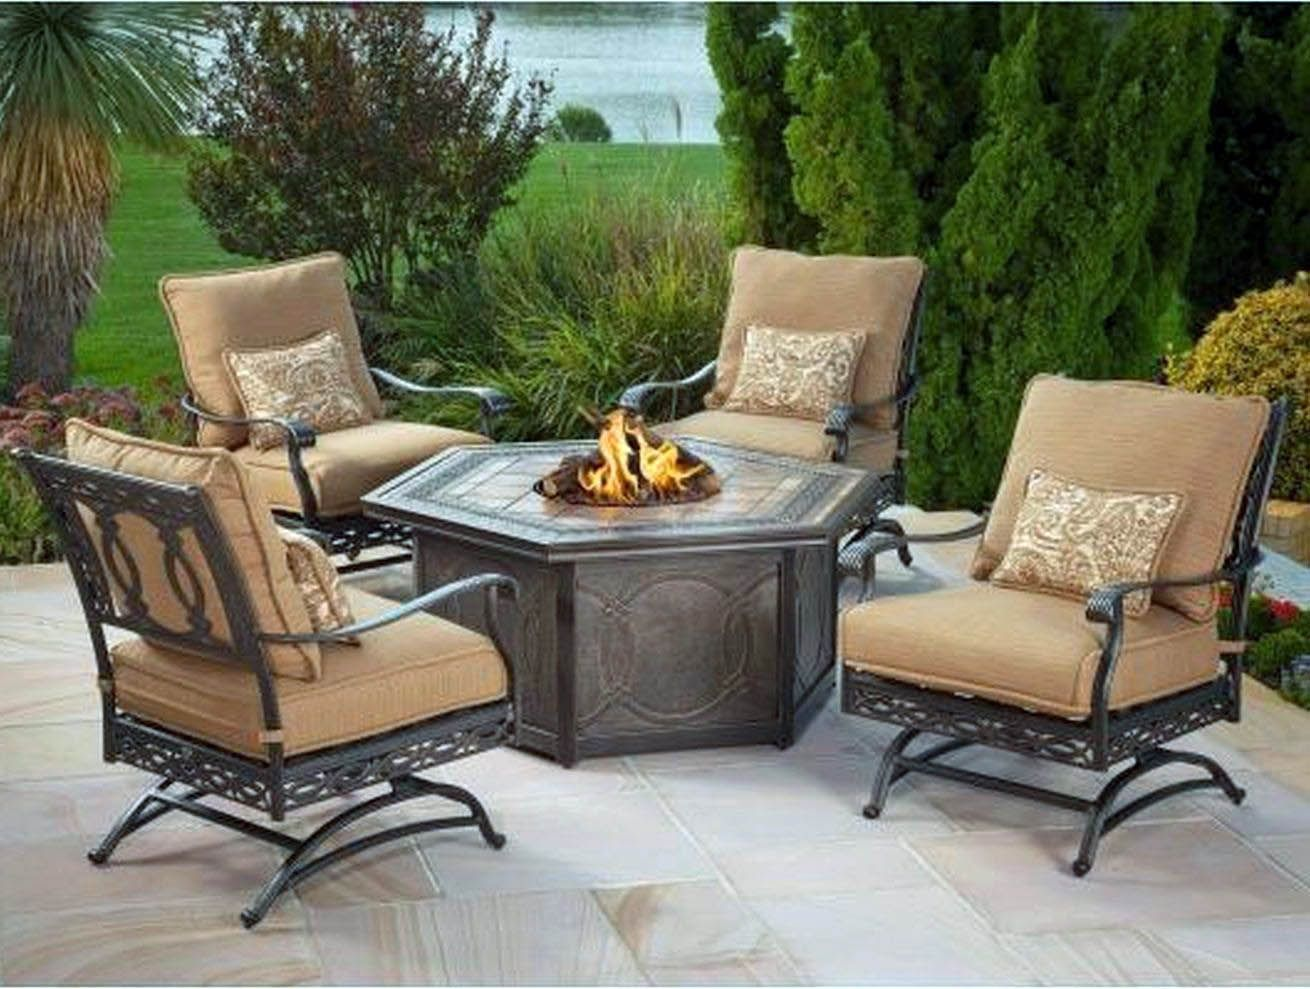 Cool Clearance On Patio Furniture That Will Blow Your Mind Cheap